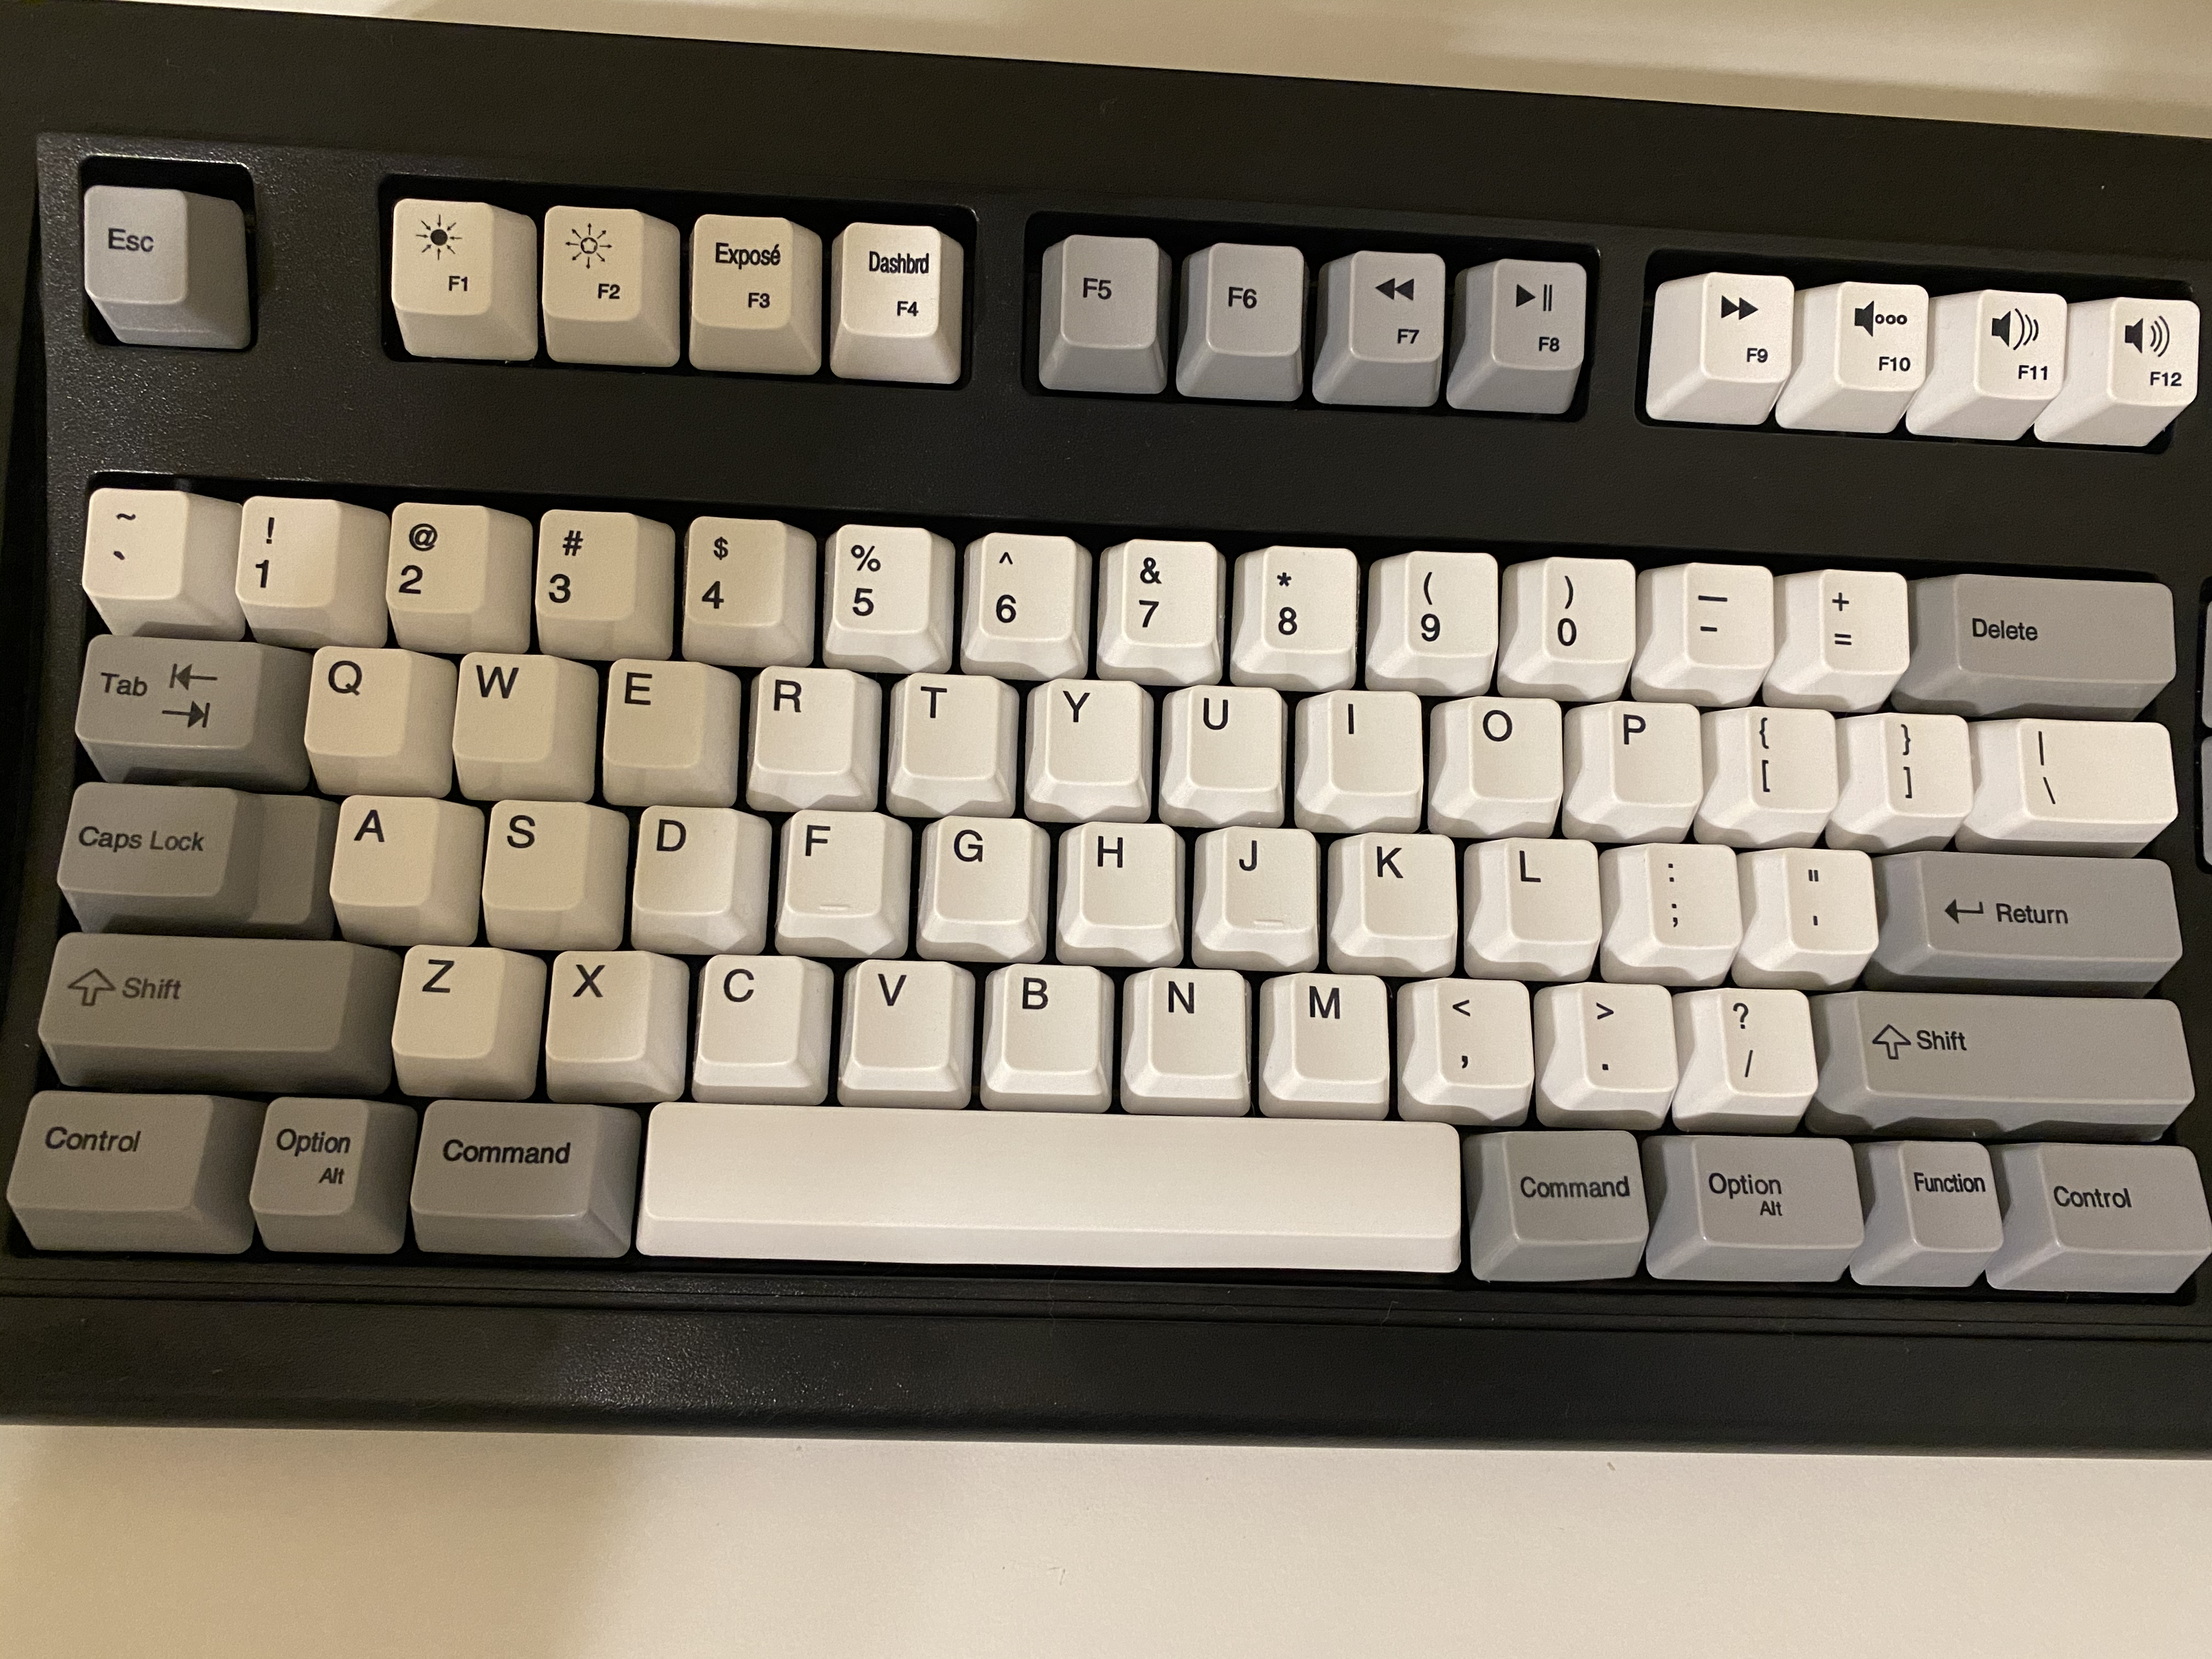 Unicomp New Model M with macOS layout